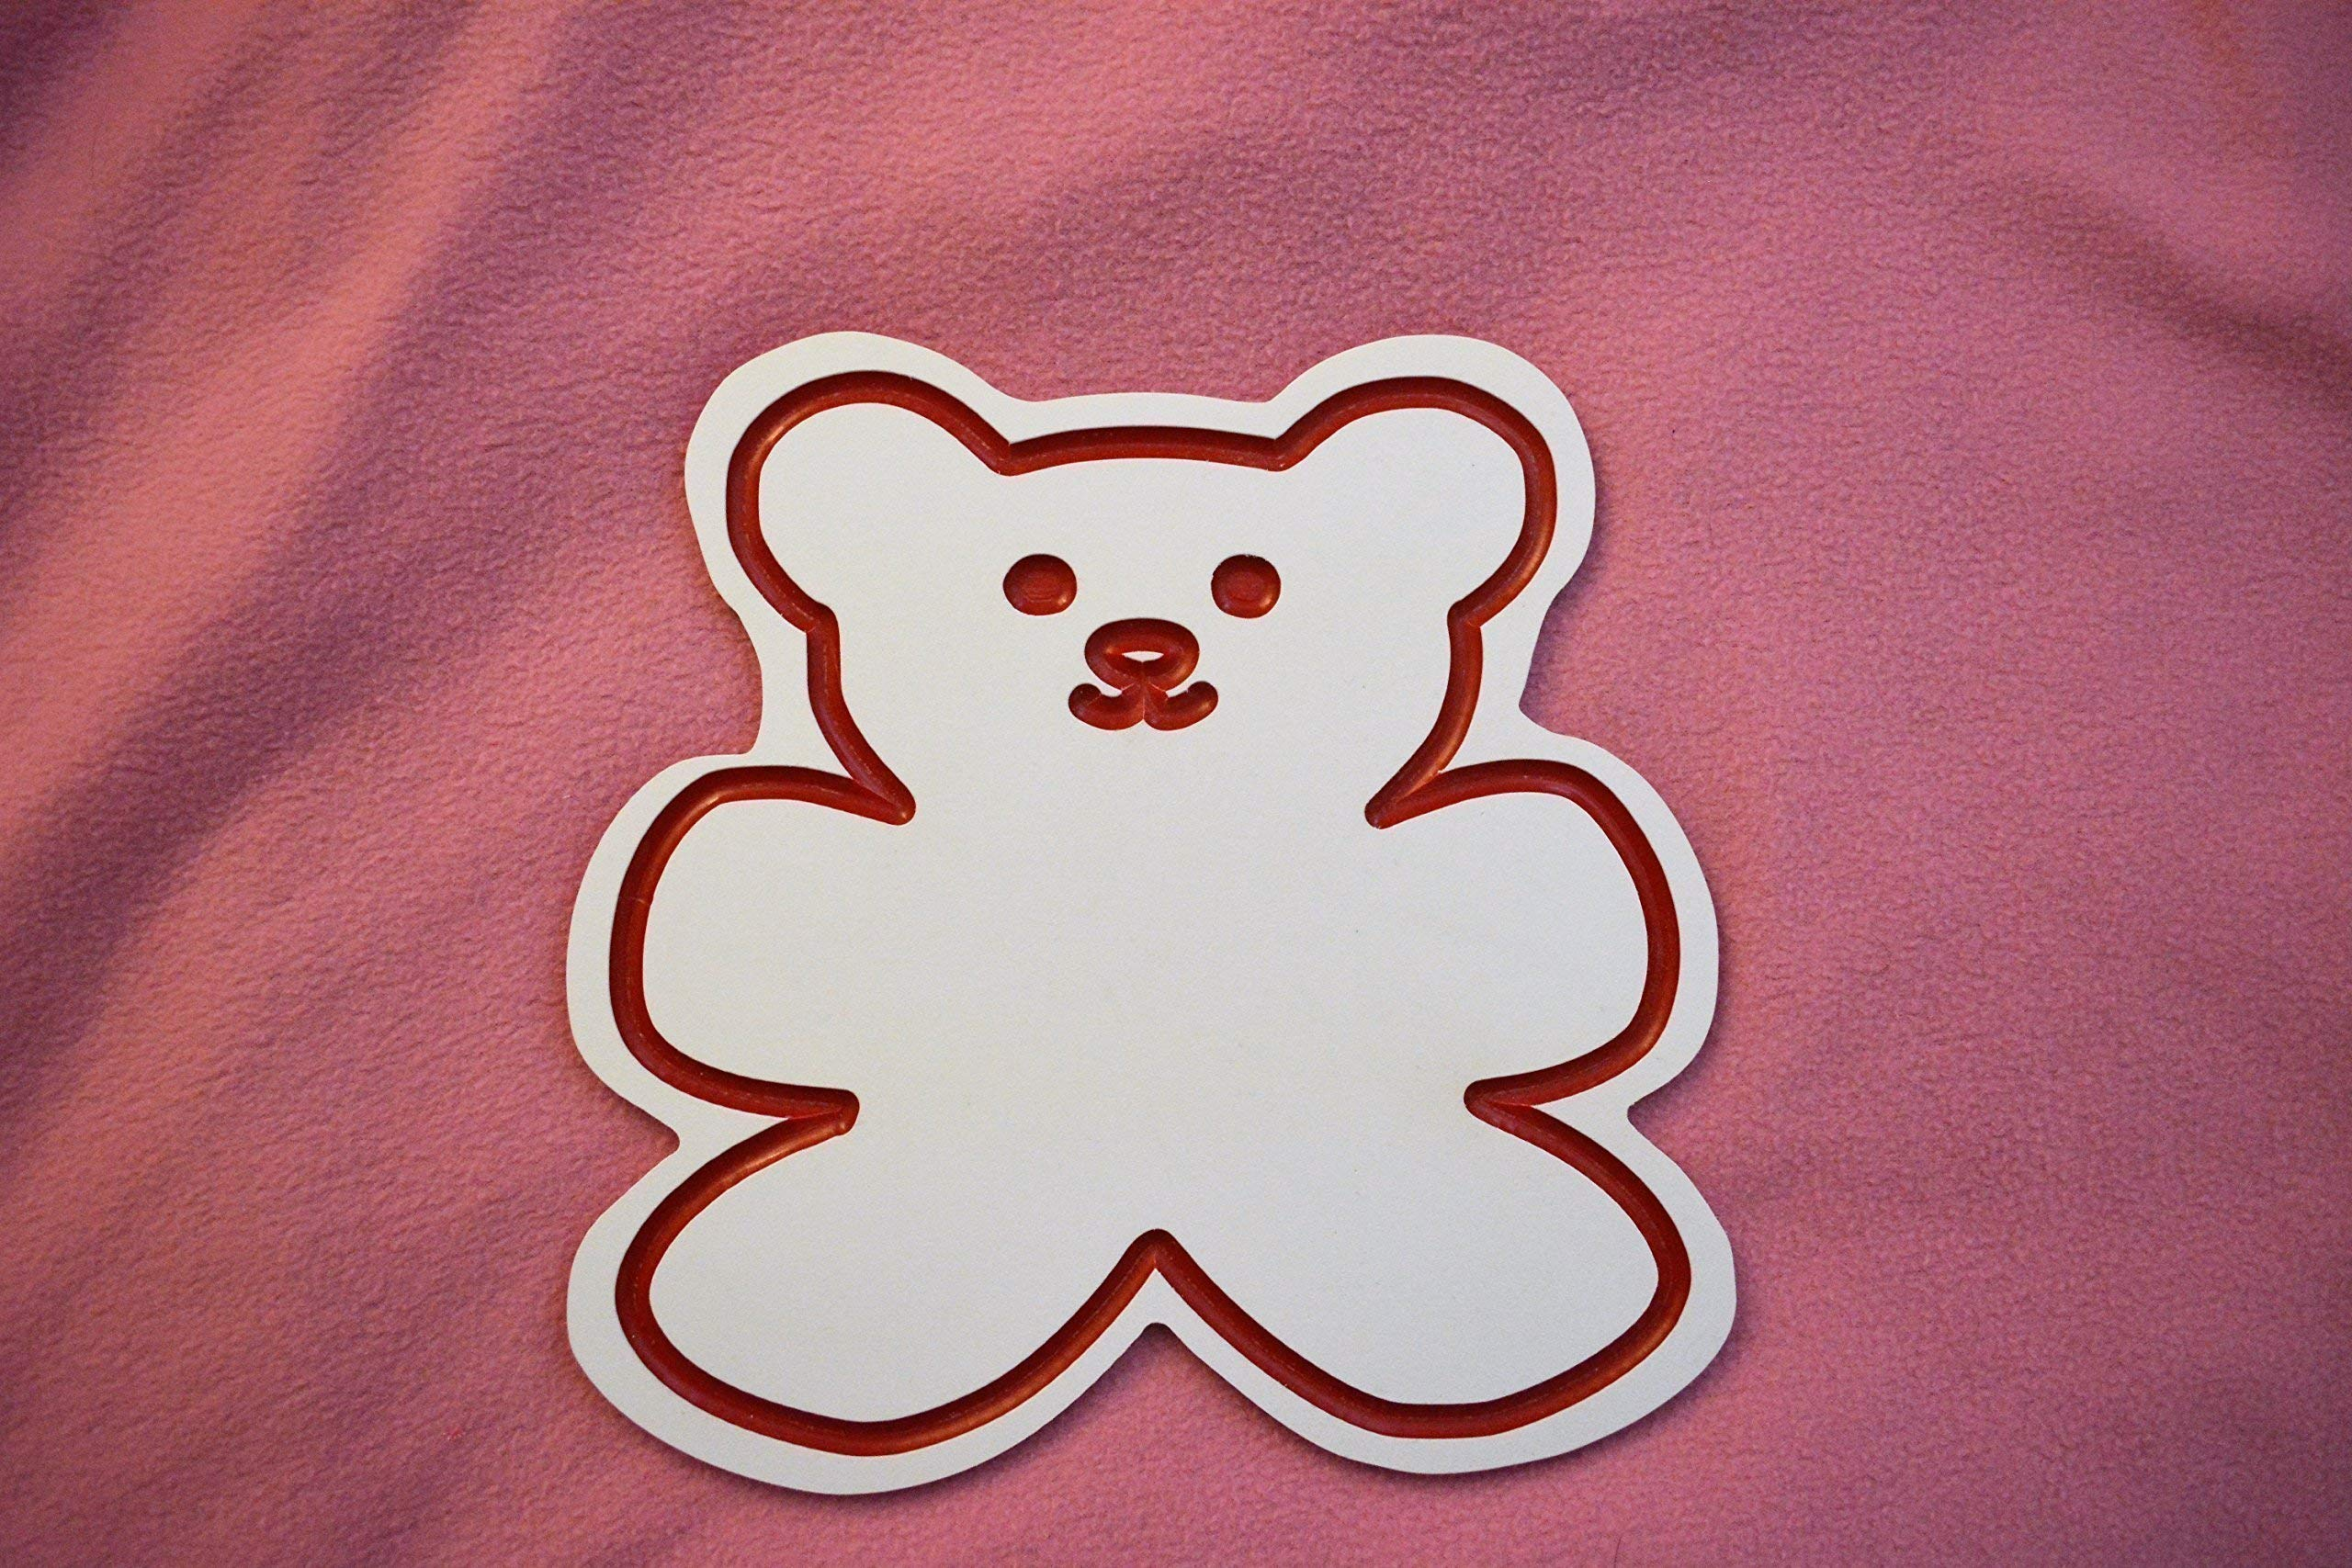 Teddy Bear Shaped White Plastic HDPE Cutting Board 12'' x 12'' Dishwasher Safe Unique Kitchen Gifts for Animal Lovers FREE FAST SHIPPING!